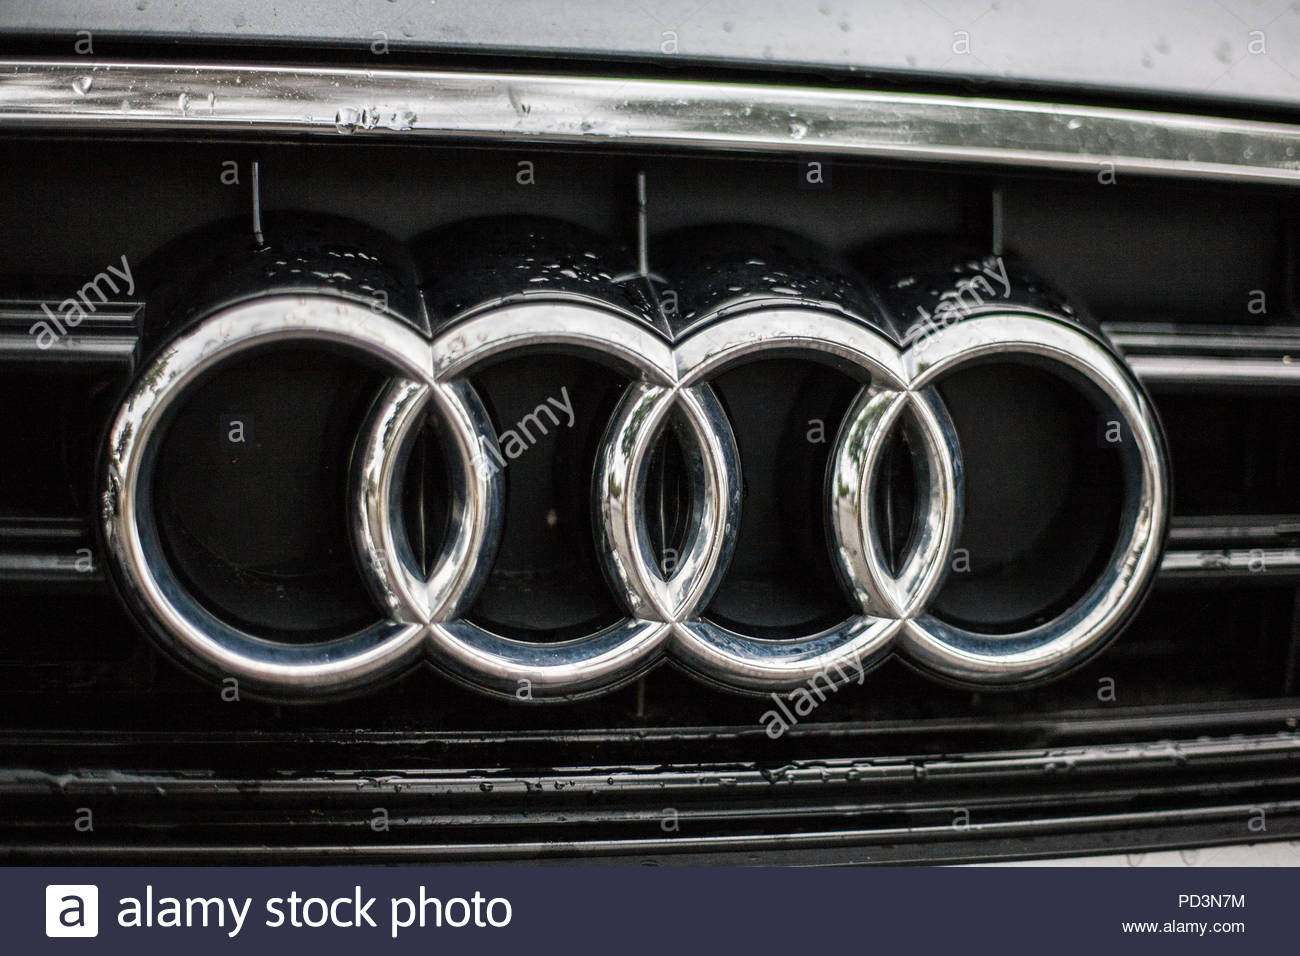 Munich Germany July 21 2018 Audi Rings On Car Front Grill With